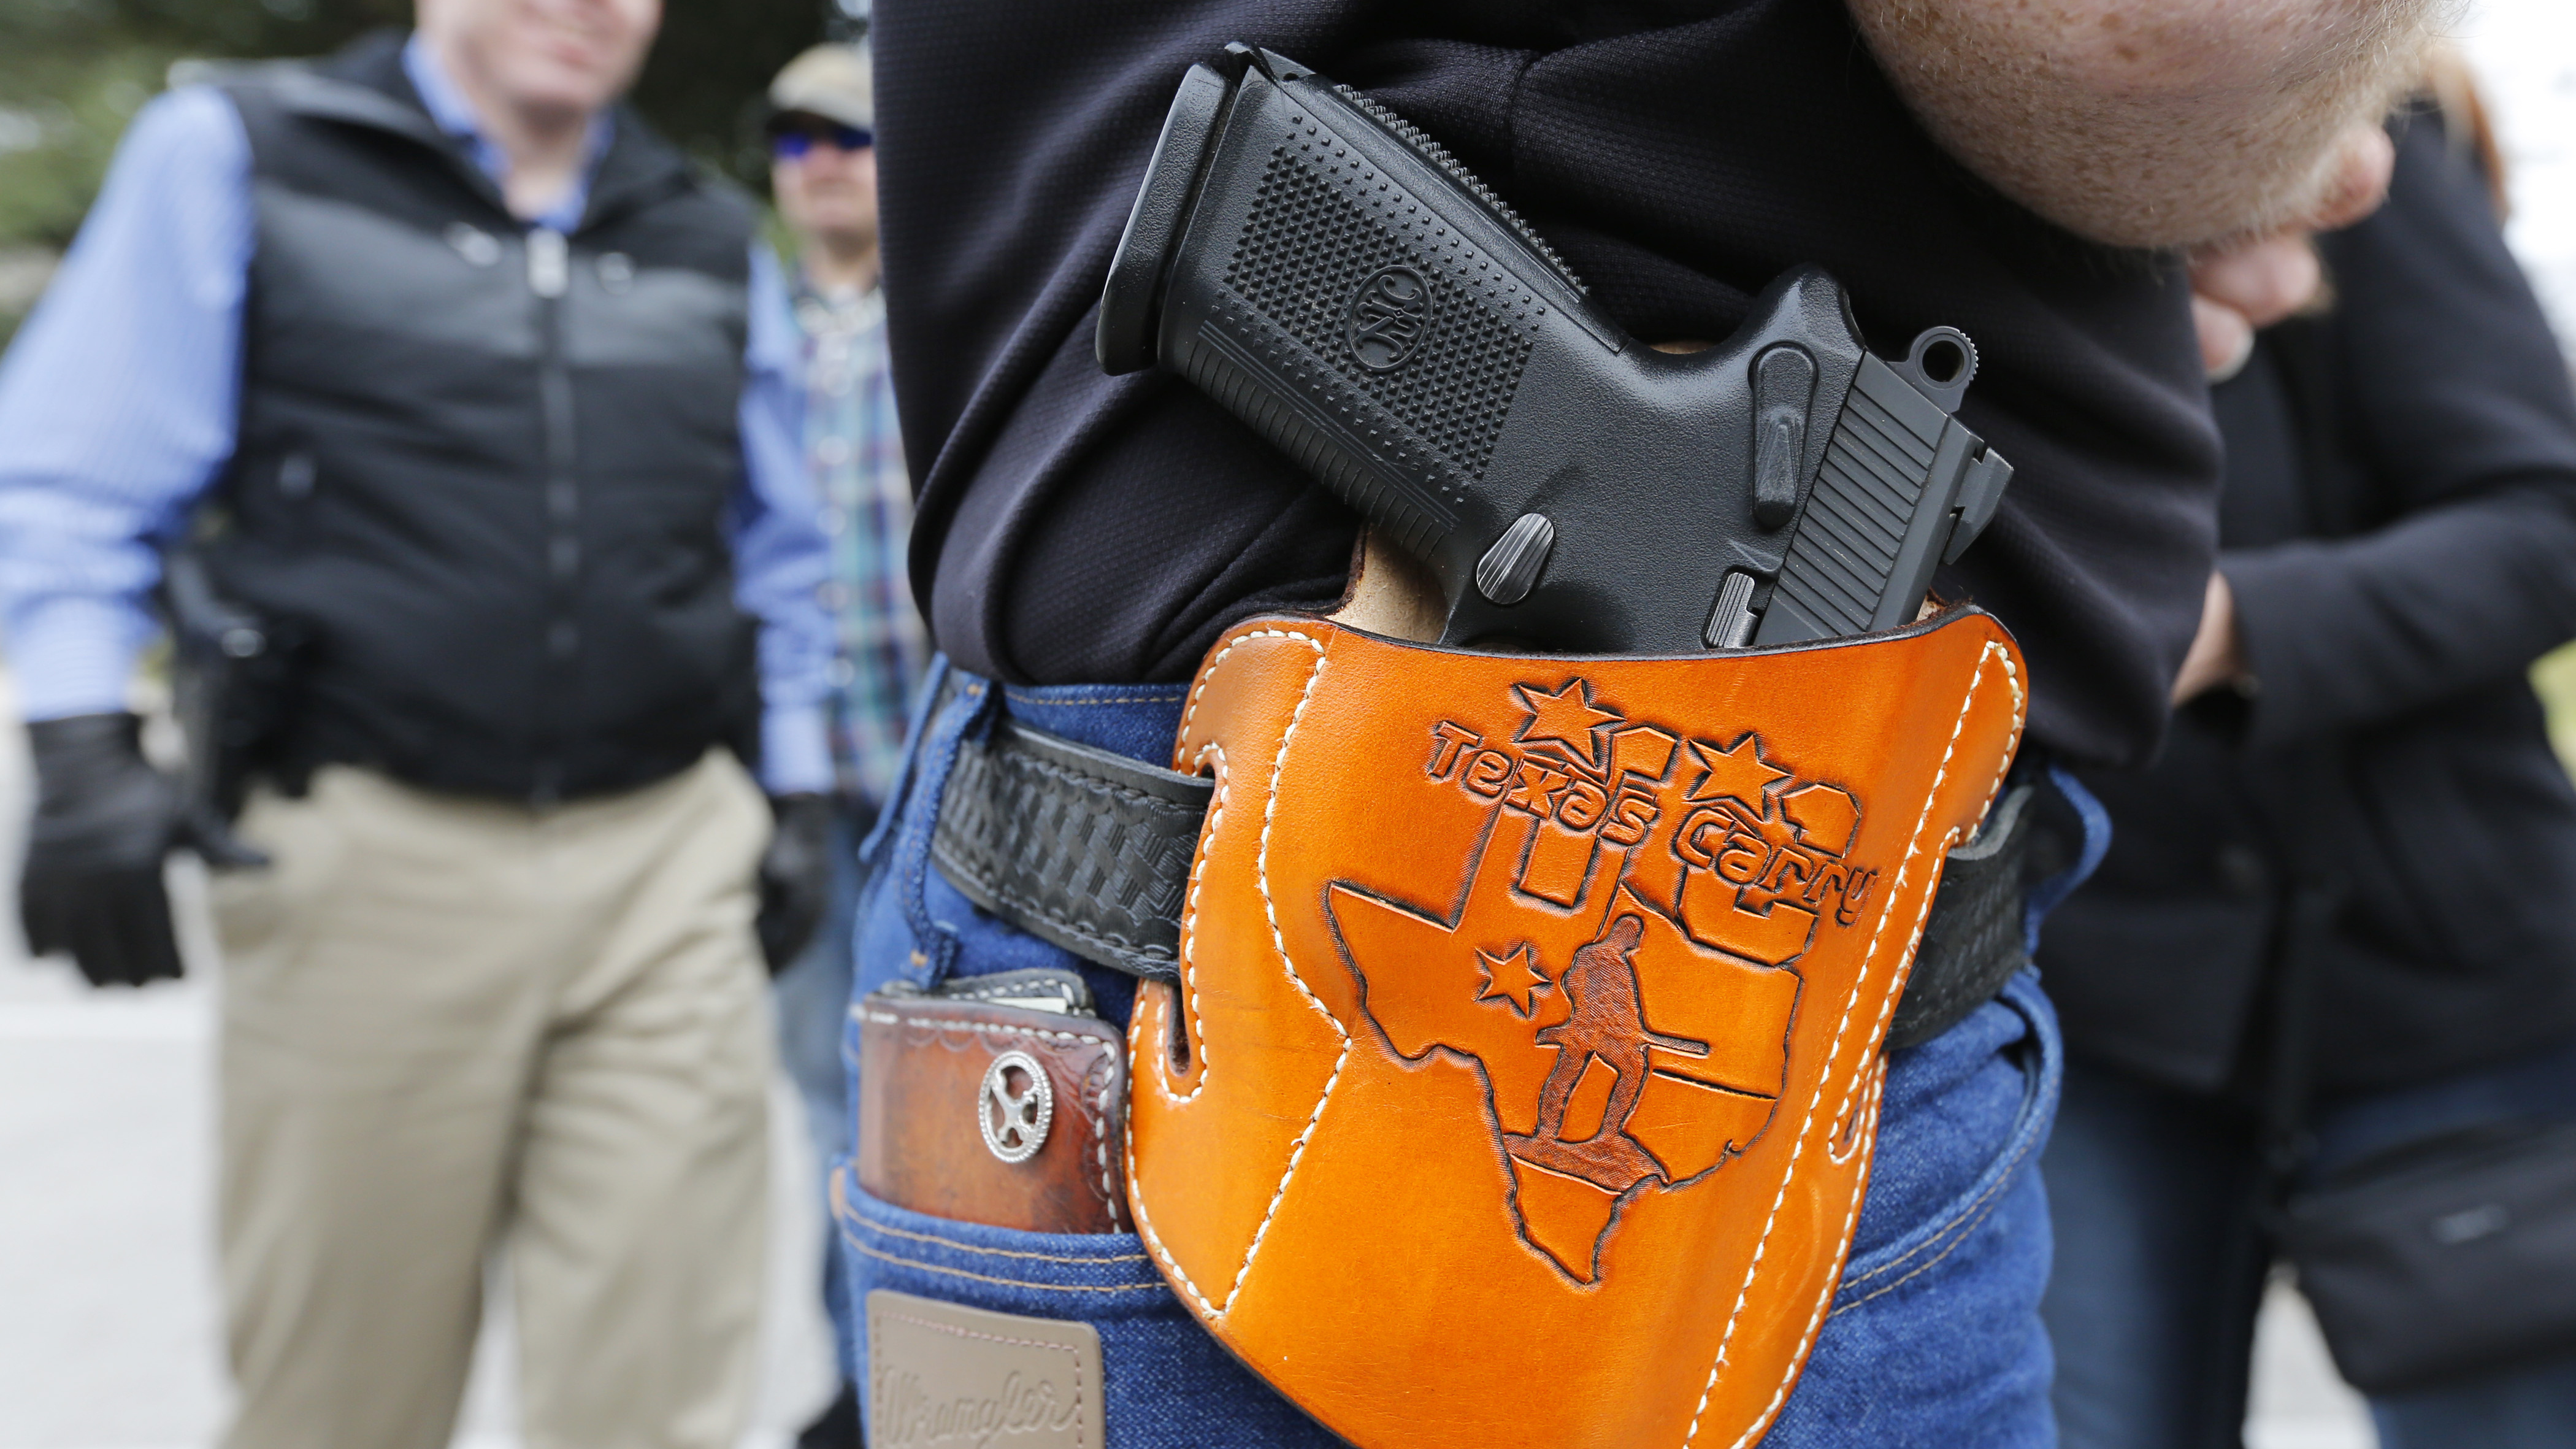 is texas open carry state